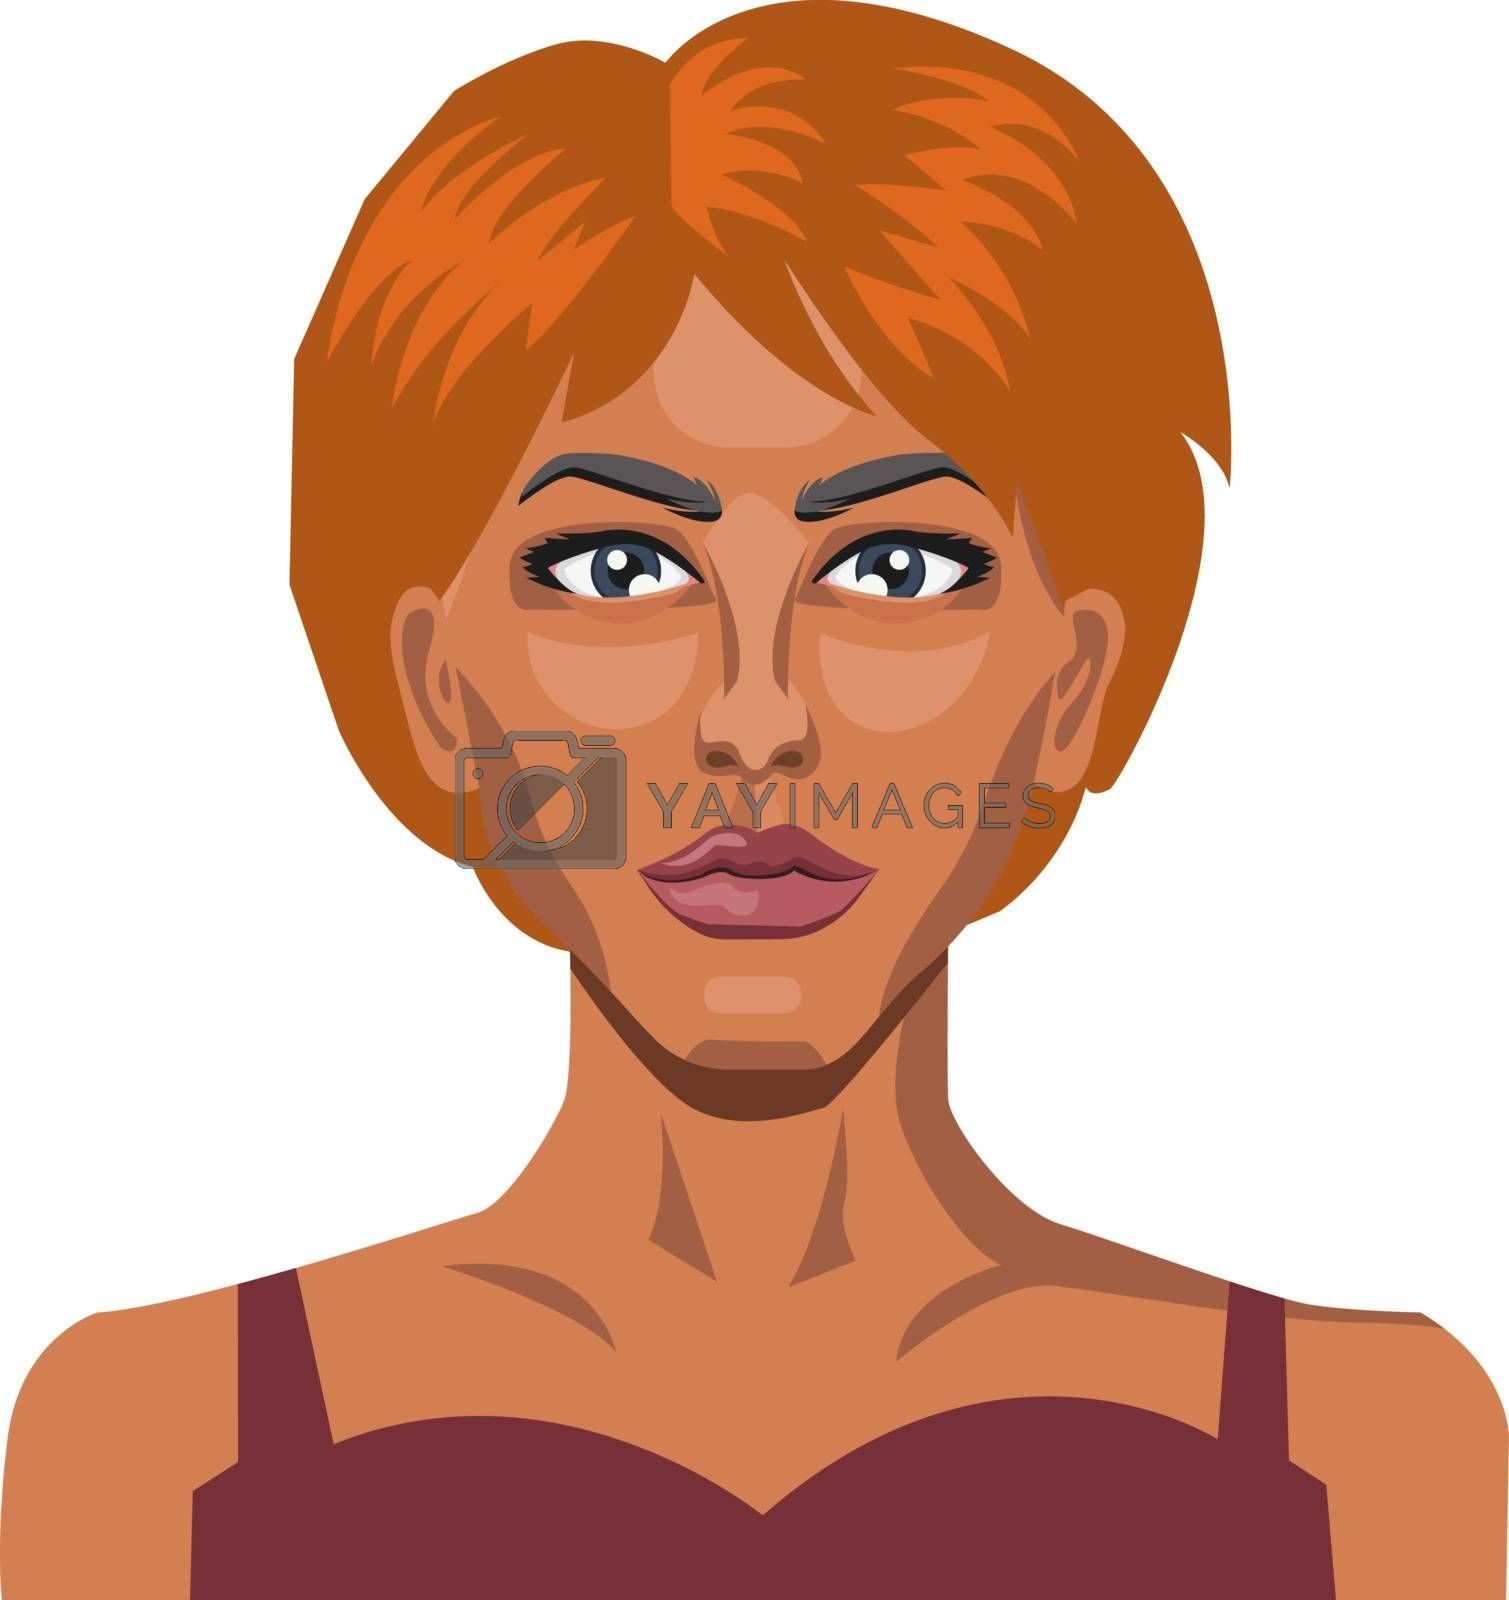 Royalty free image of Girl with short red hair illustration vector on white background by Morphart